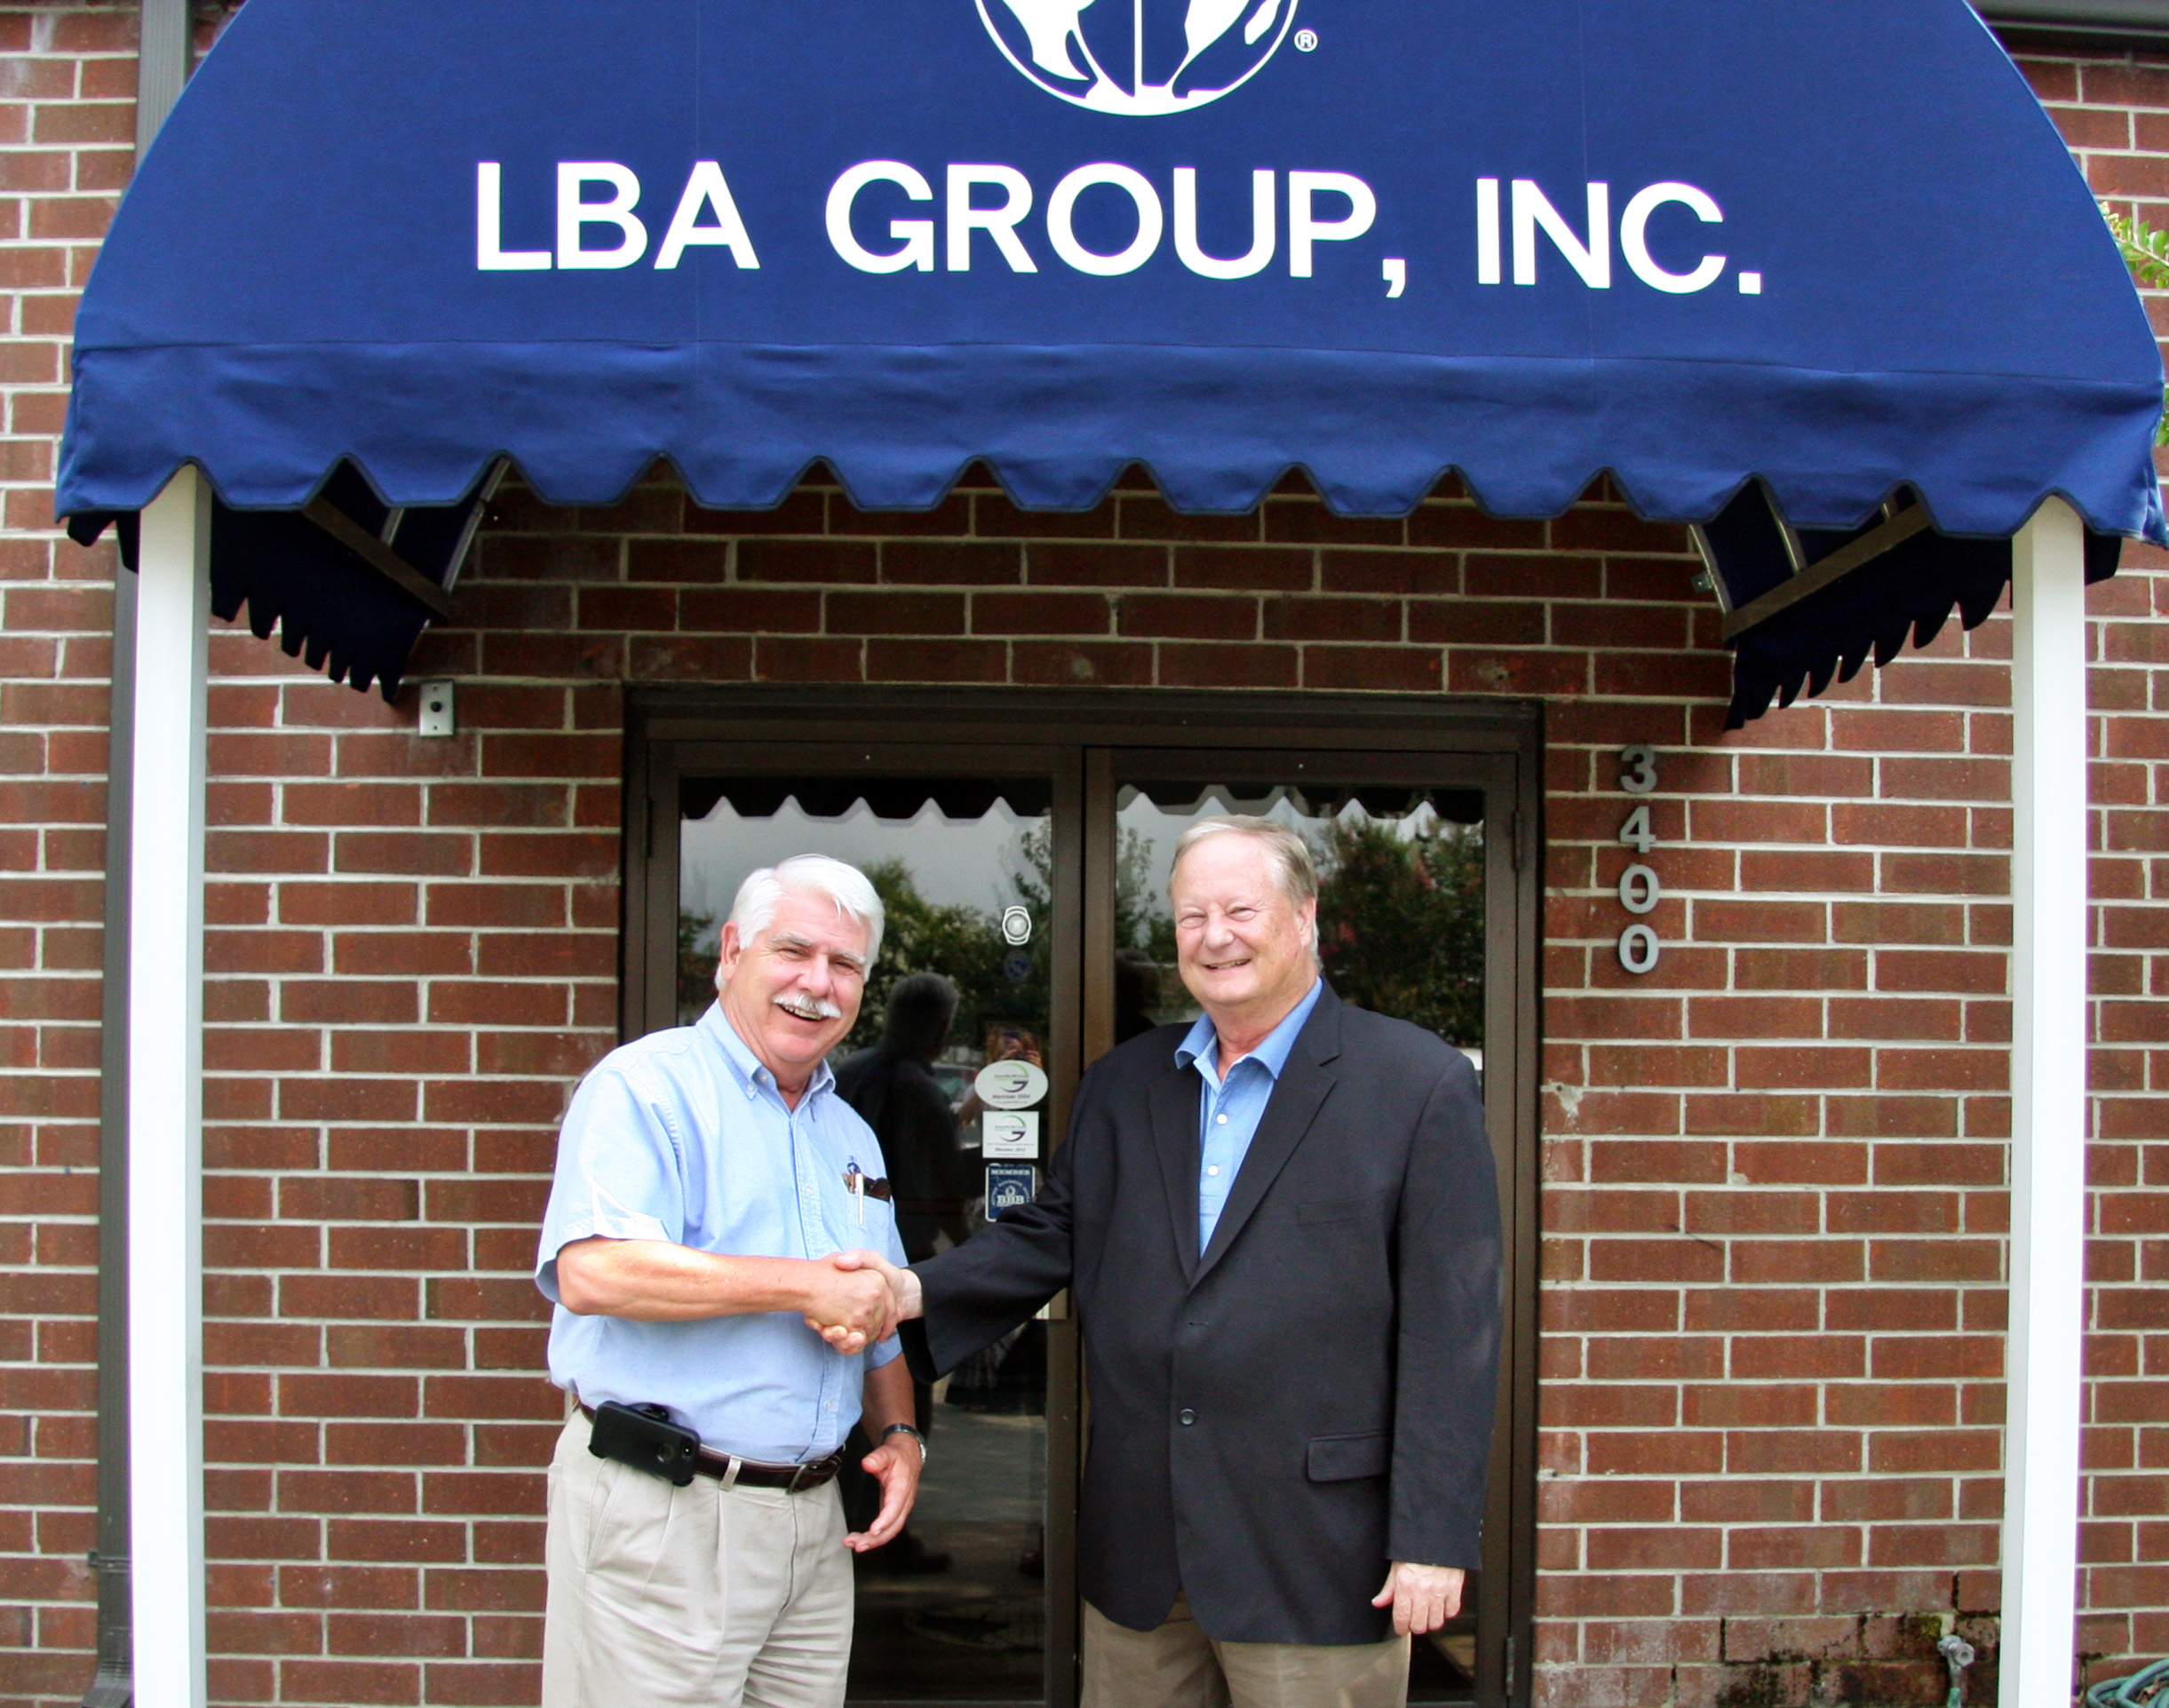 CEO Lawrence Behr welcomes Mark Fehlig to LBA